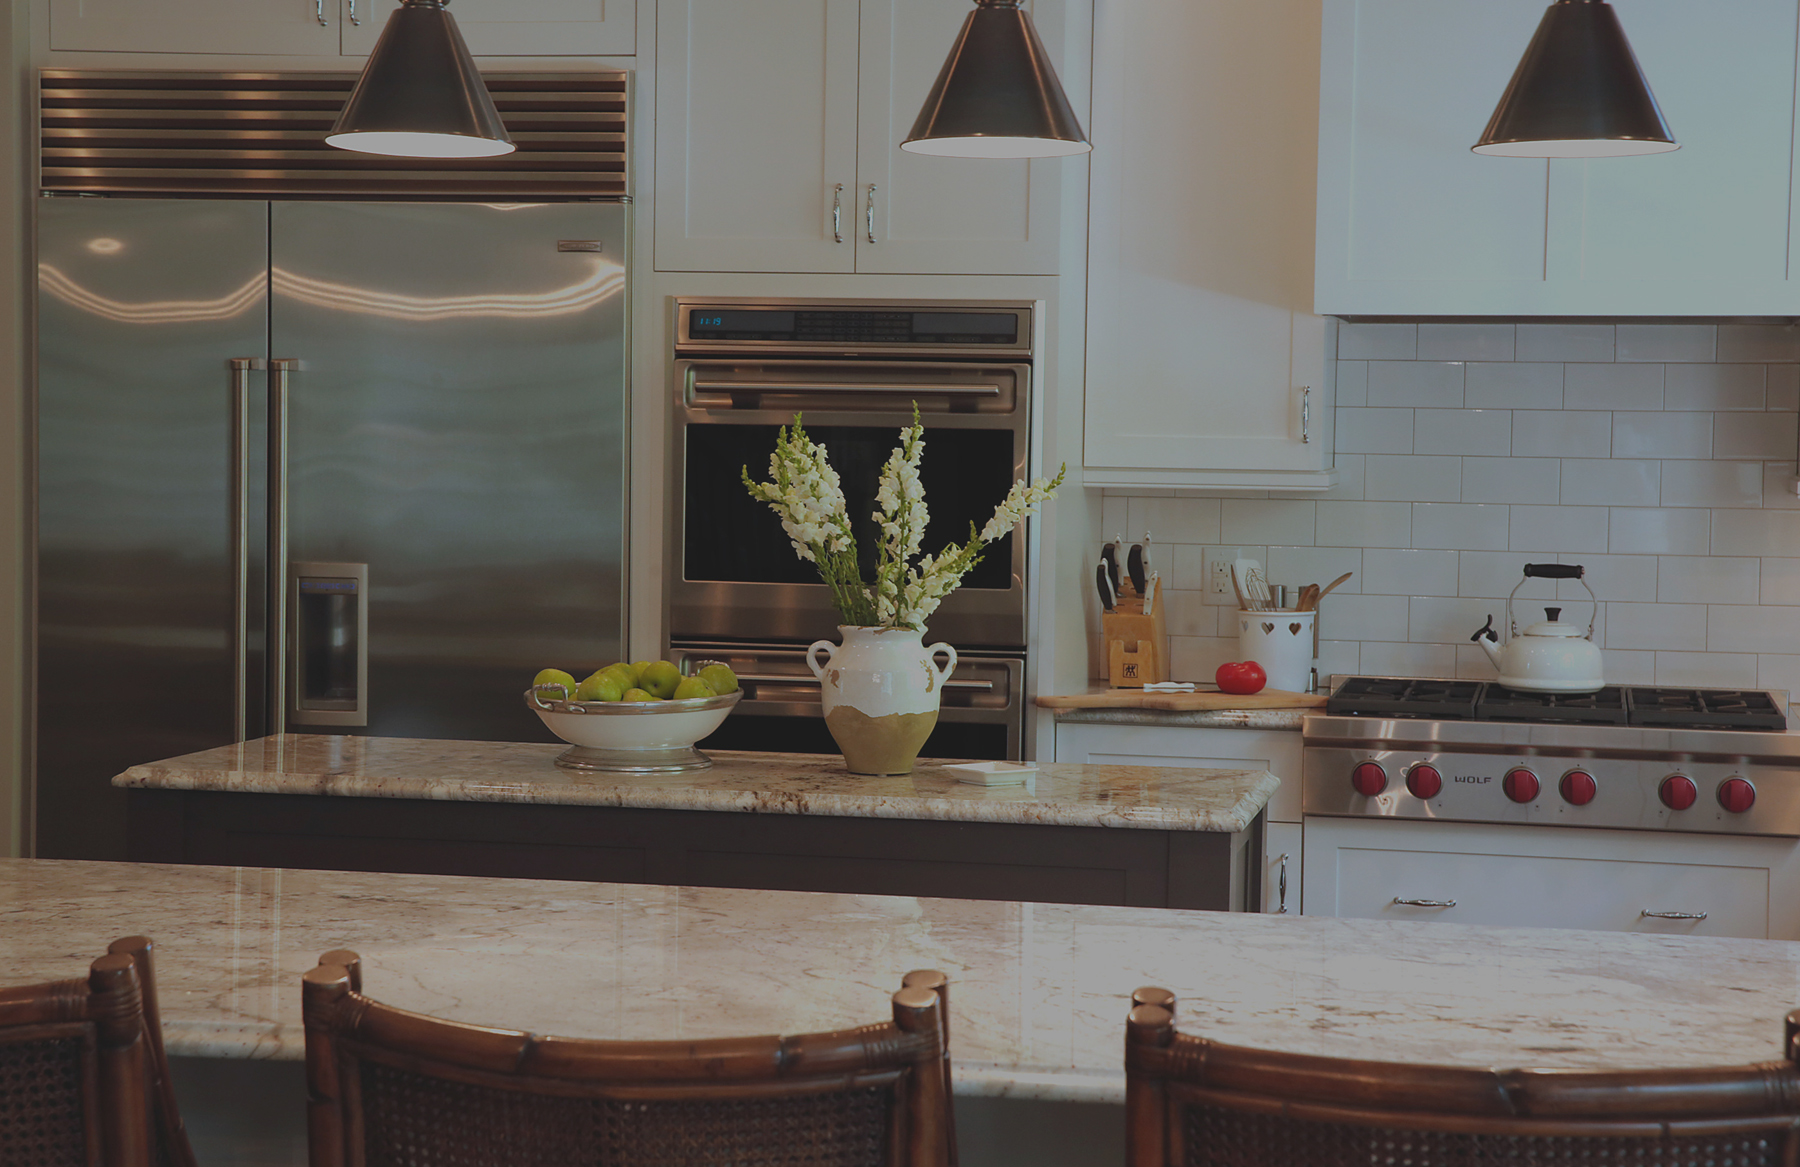 San Diego refinishing Services on demand